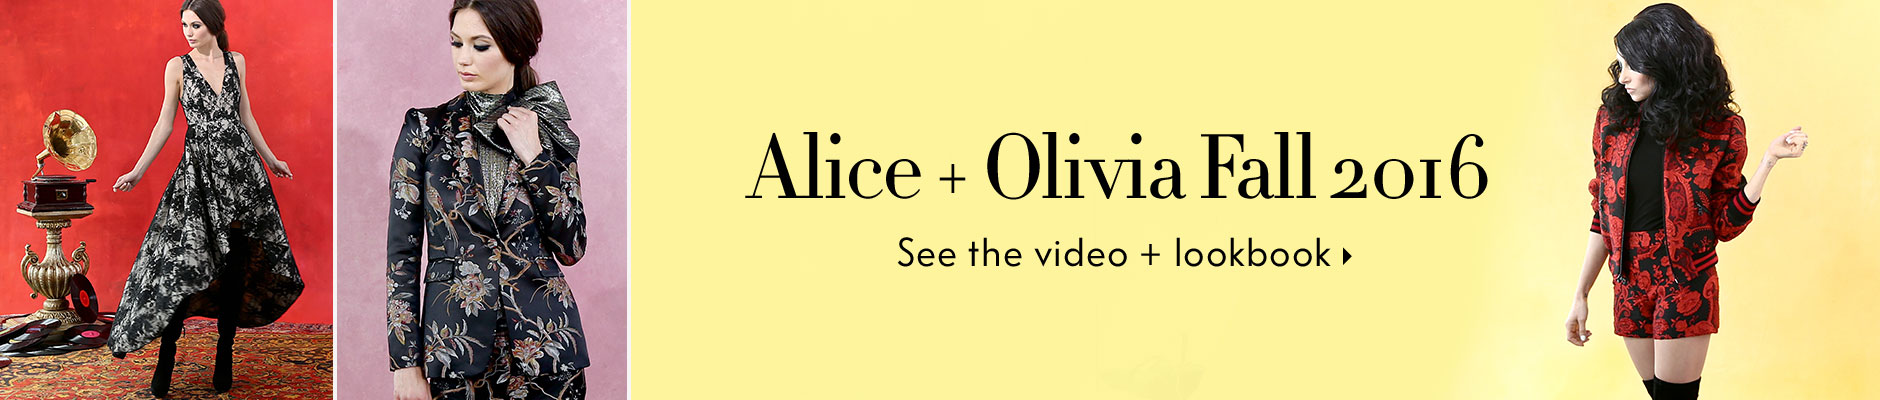 Alice + Olivia Fall 2016 - See the video + lookbook